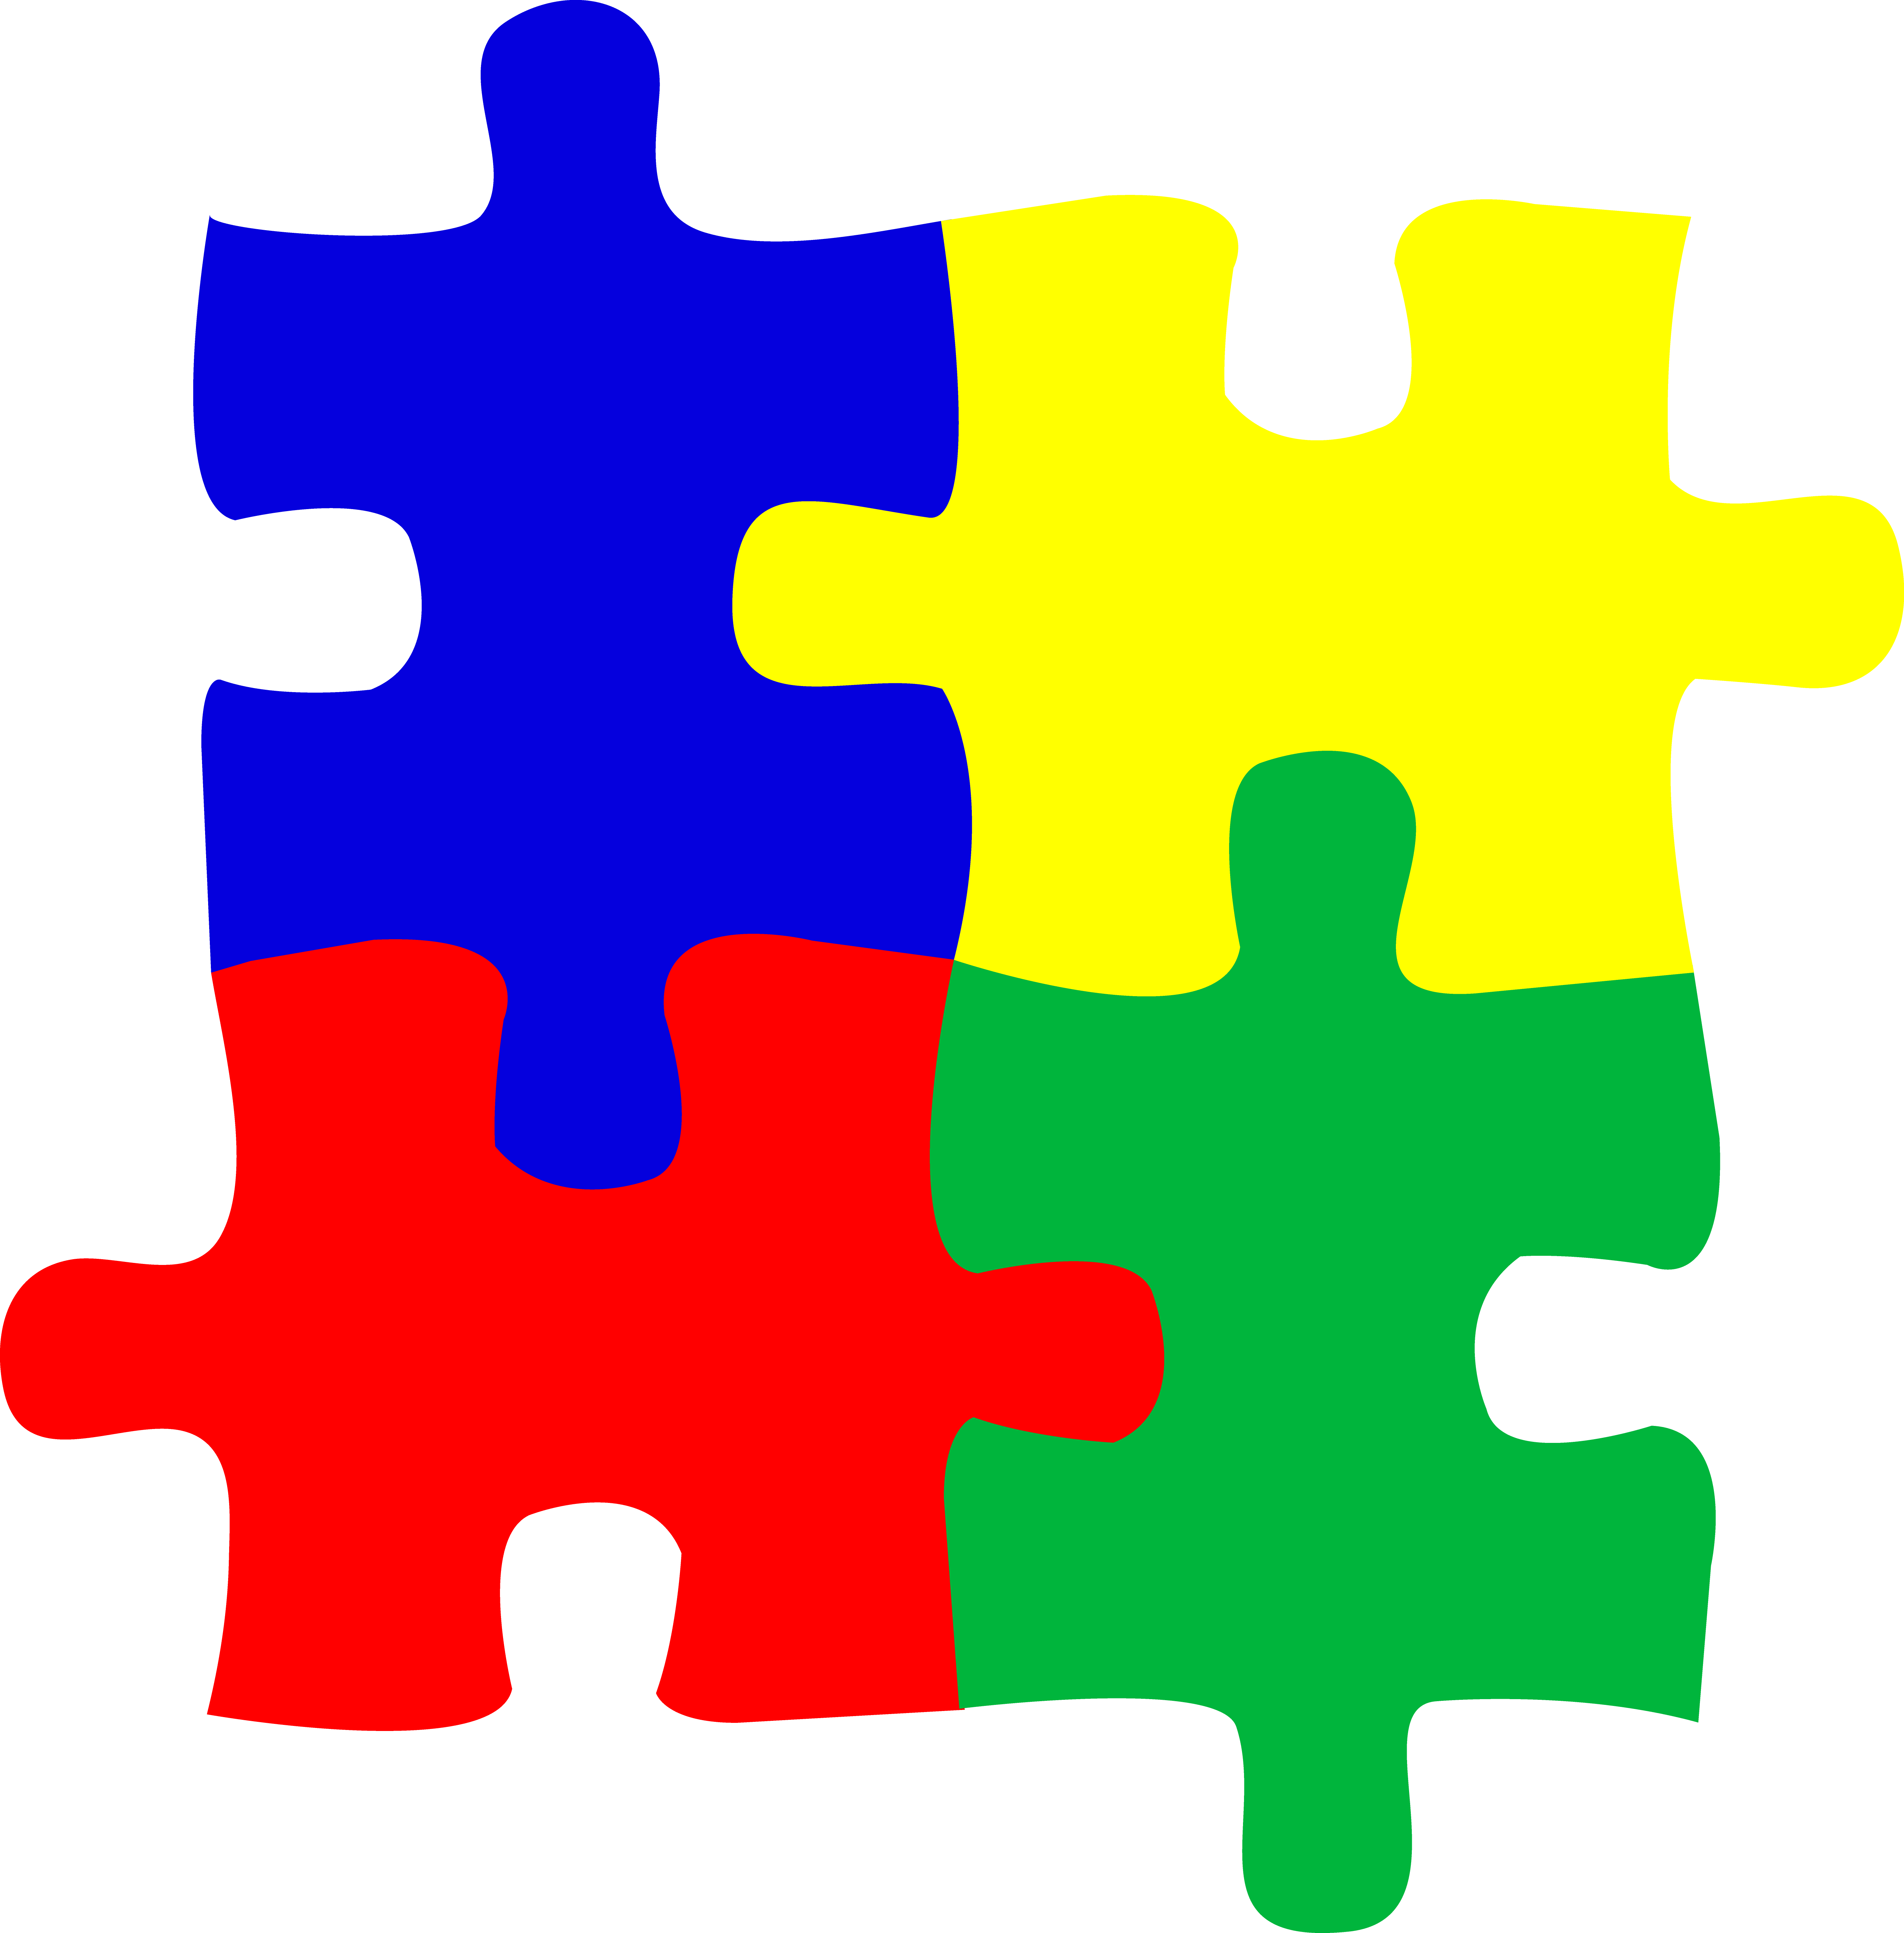 Leader clipart puzzle. Database for autistic people